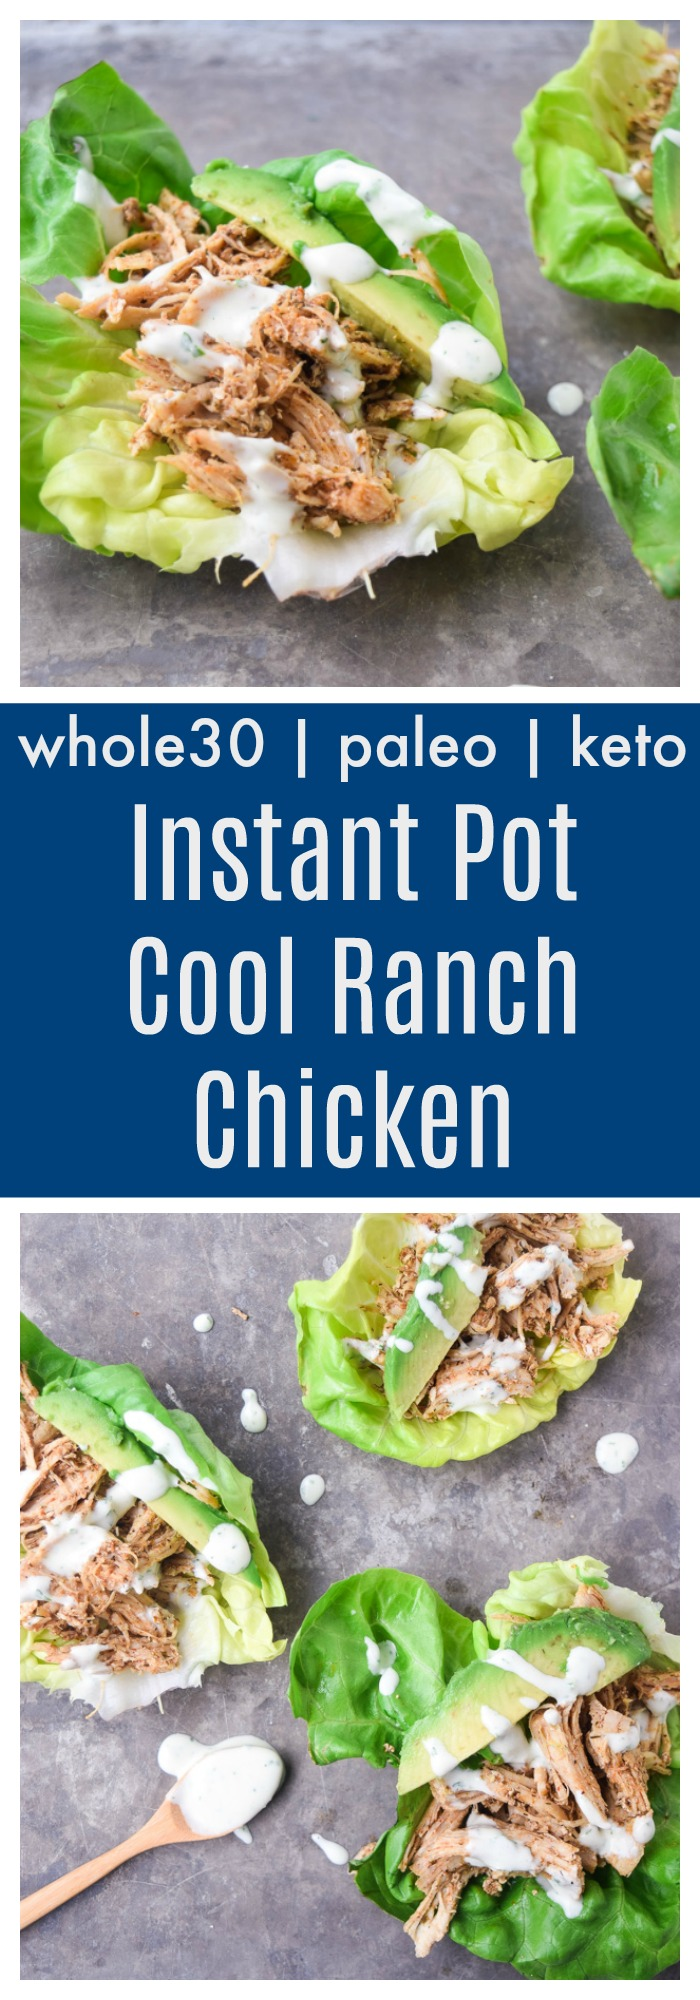 instant pot cool ranch chicken